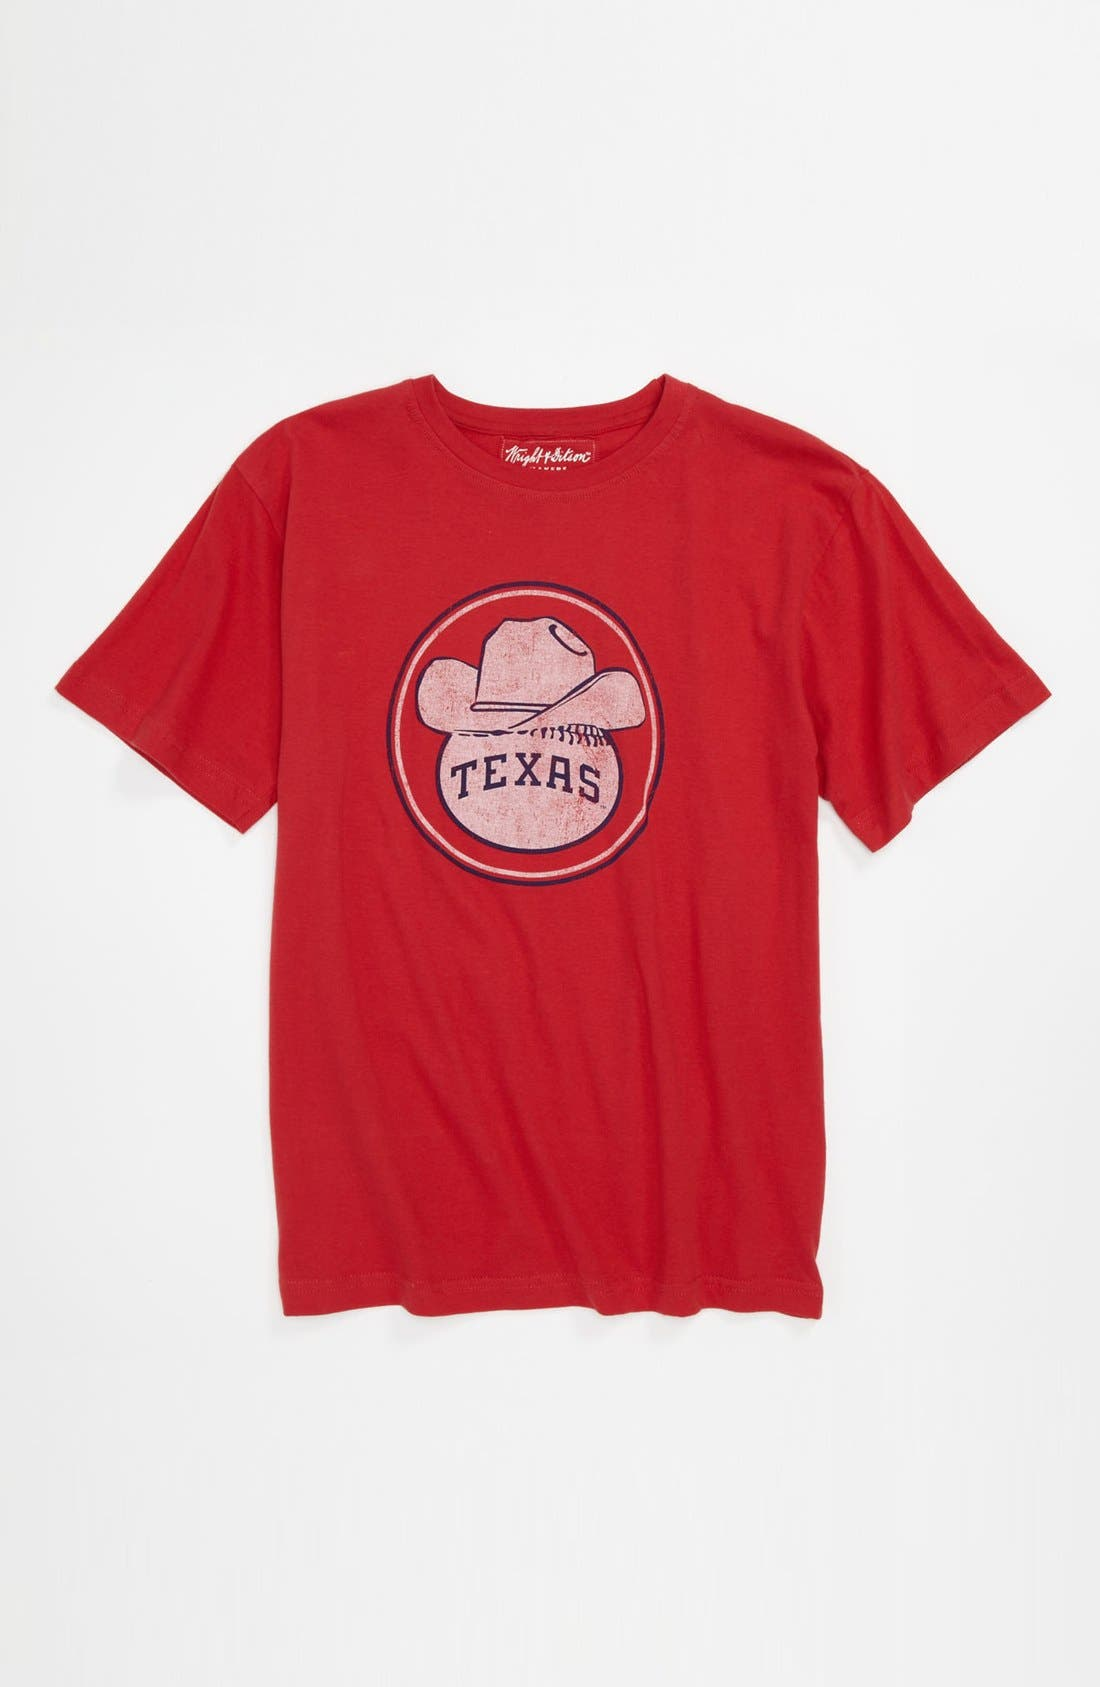 Alternate Image 1 Selected - Wright & Ditson 'Texas Rangers' T-Shirt (Little Boys & Big Boys)